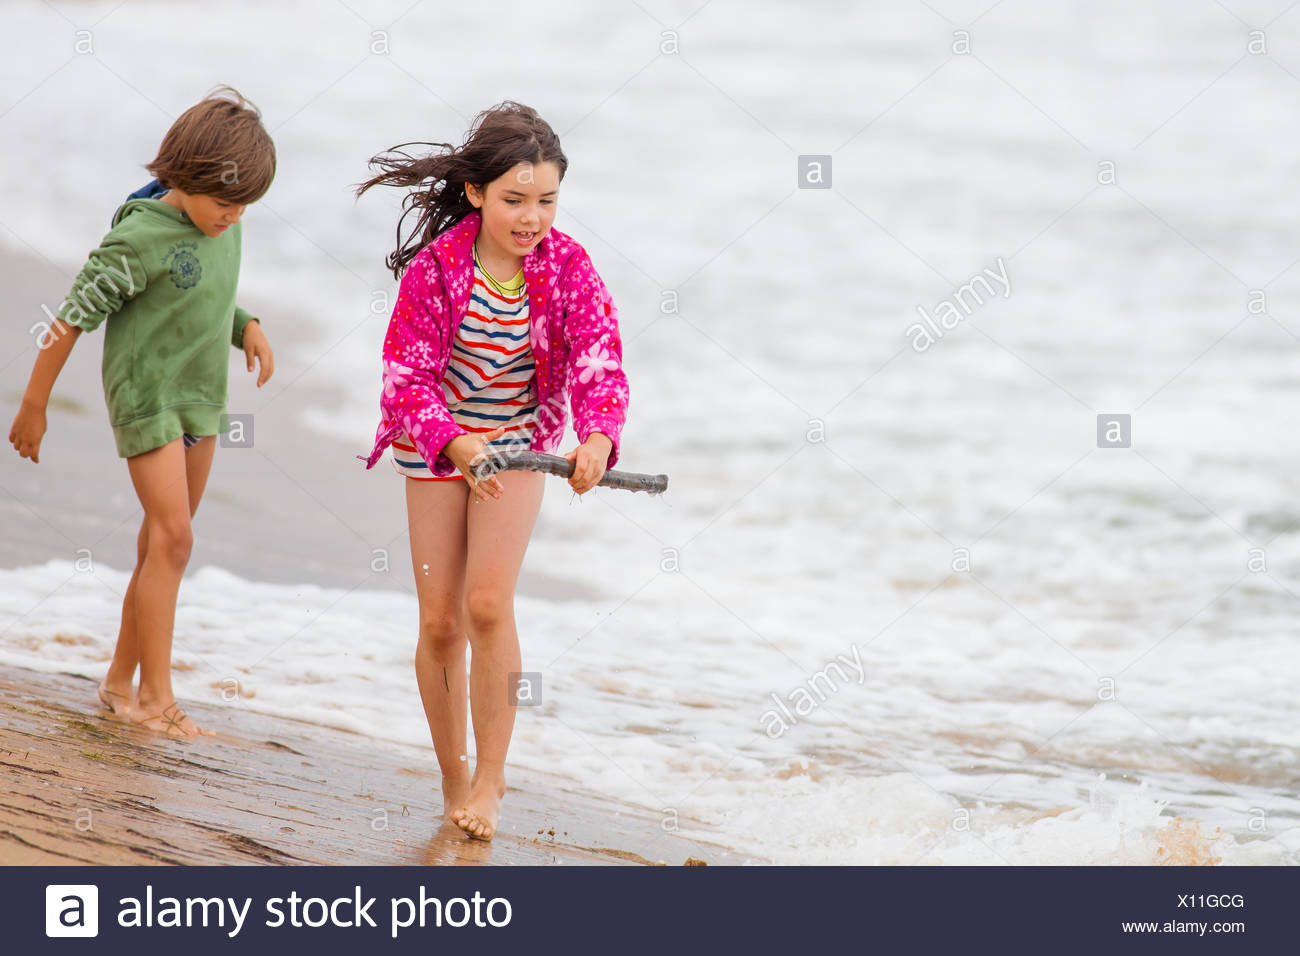 Boy and girl walking on the beach Stock Photo